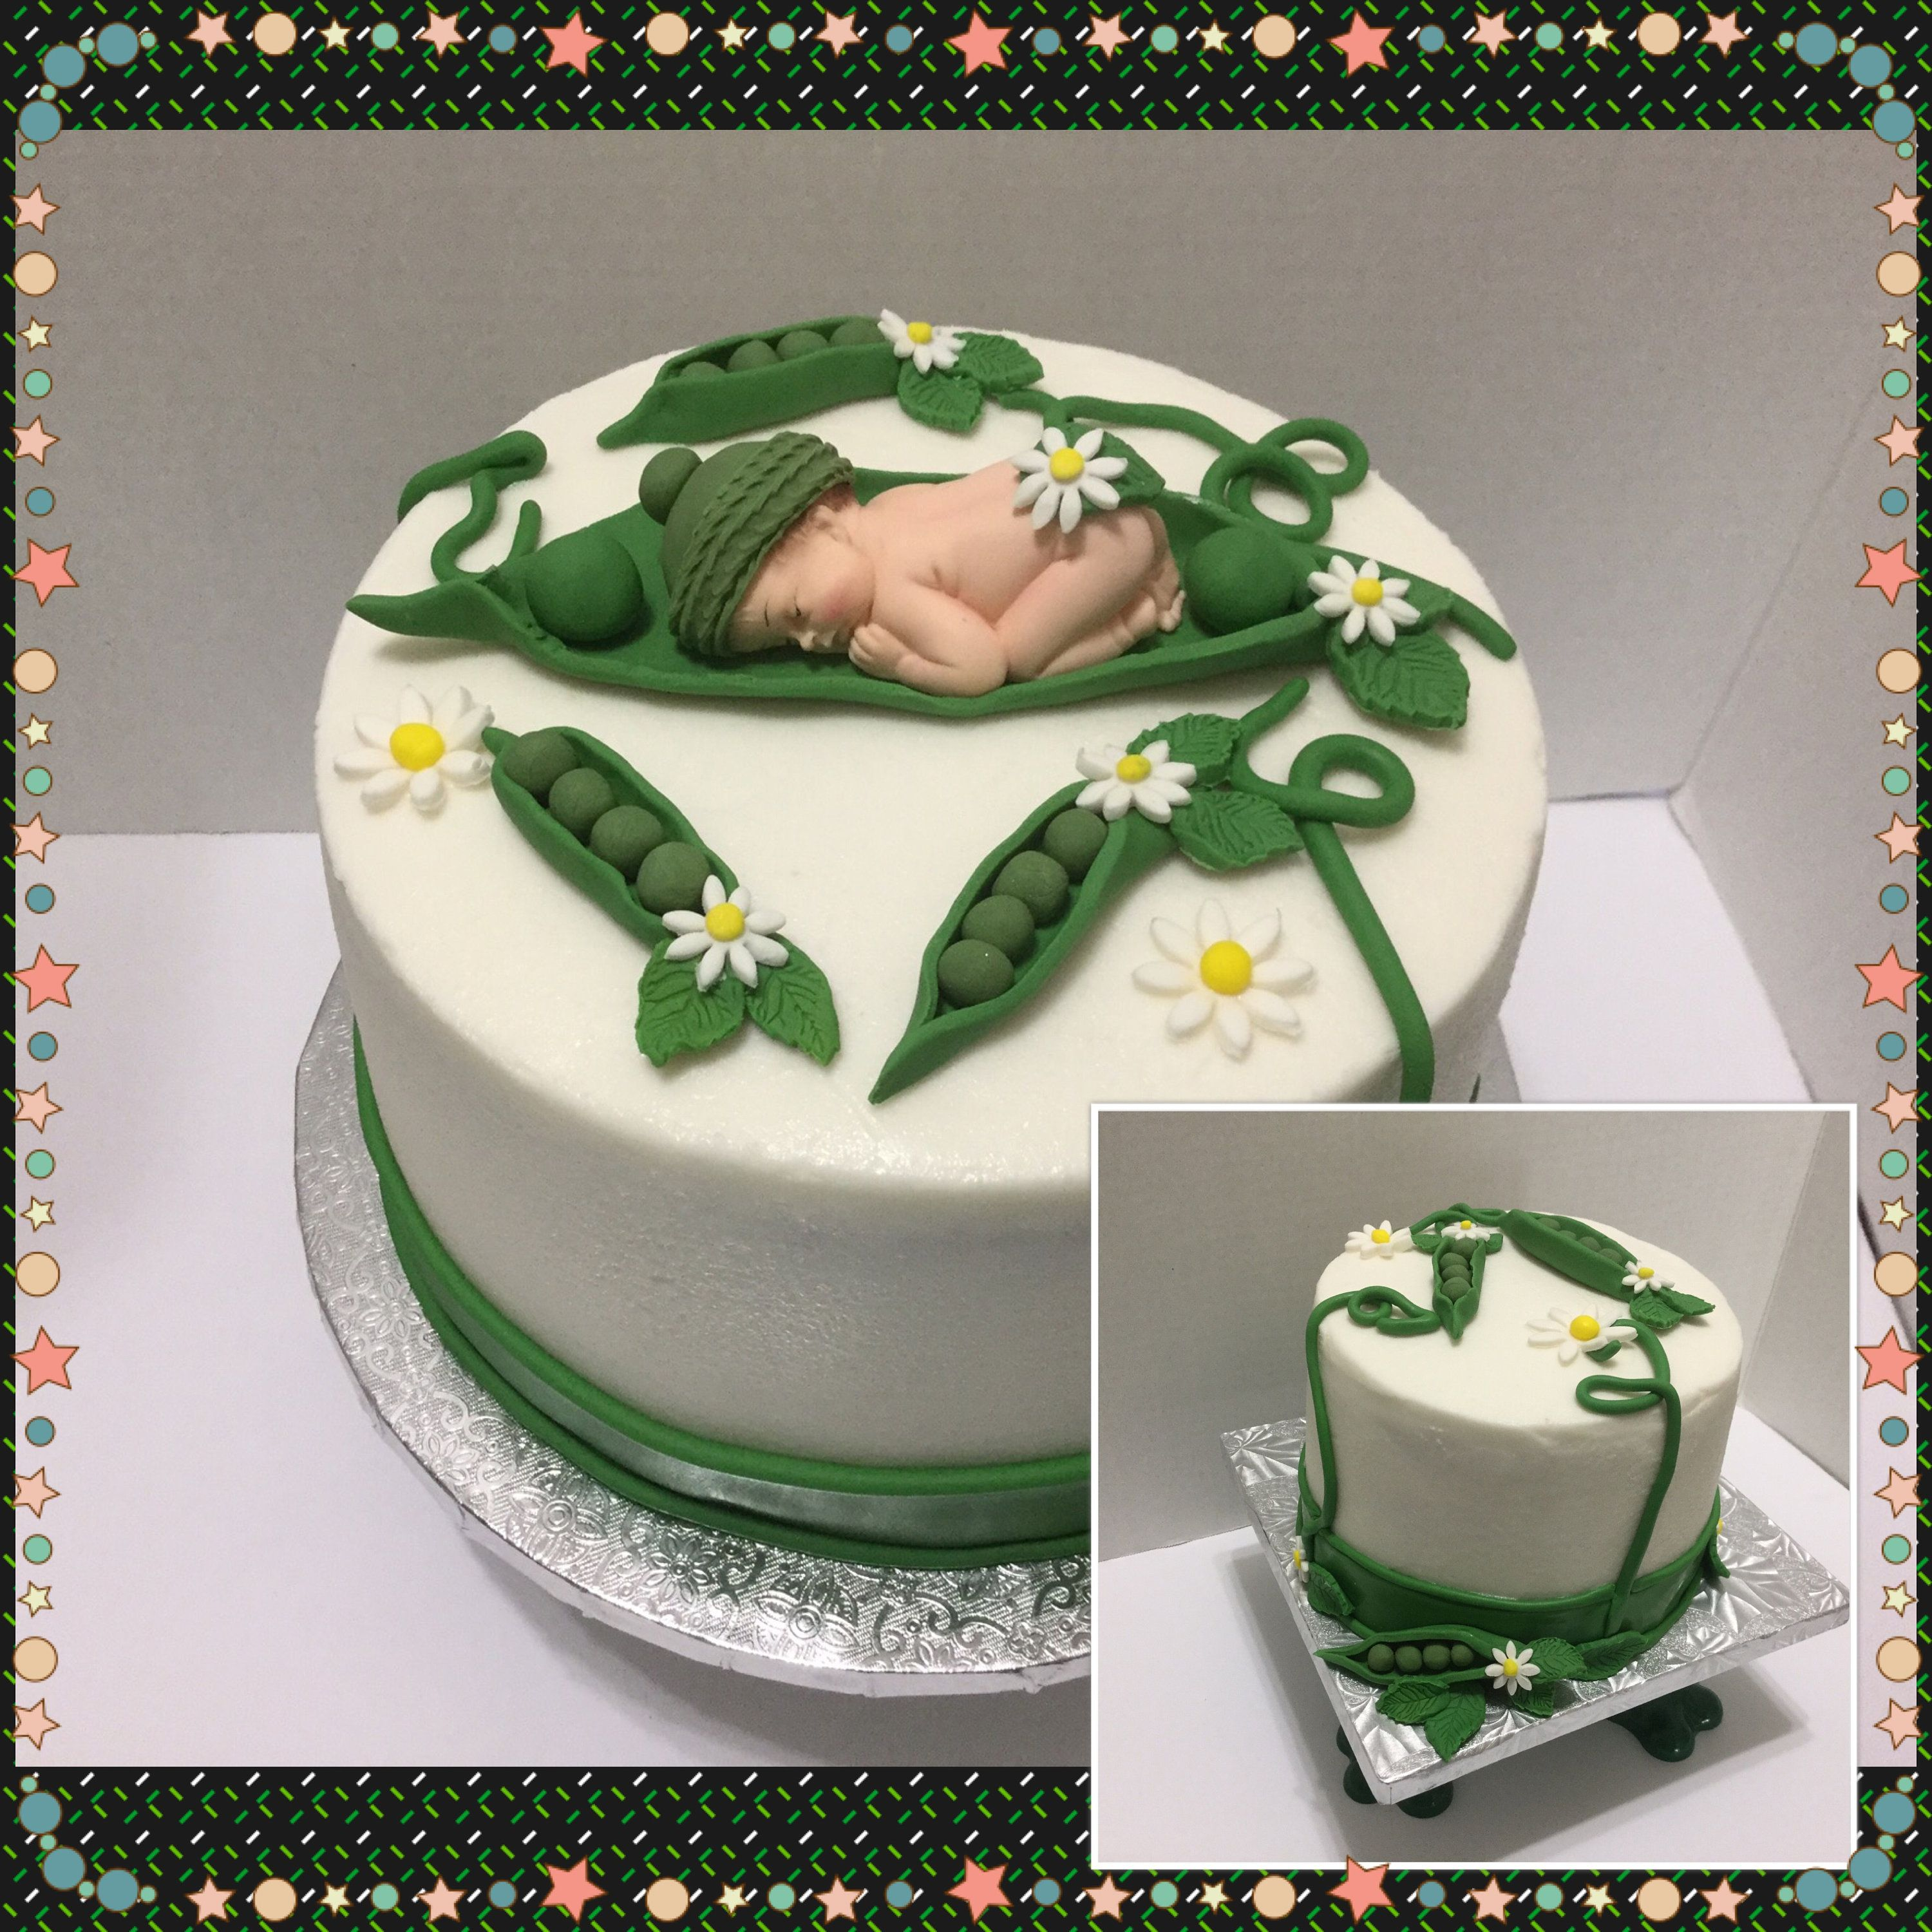 PEA IN A POD BABY DIAPER CUPCAKES SHOWER CAKE TOPPER